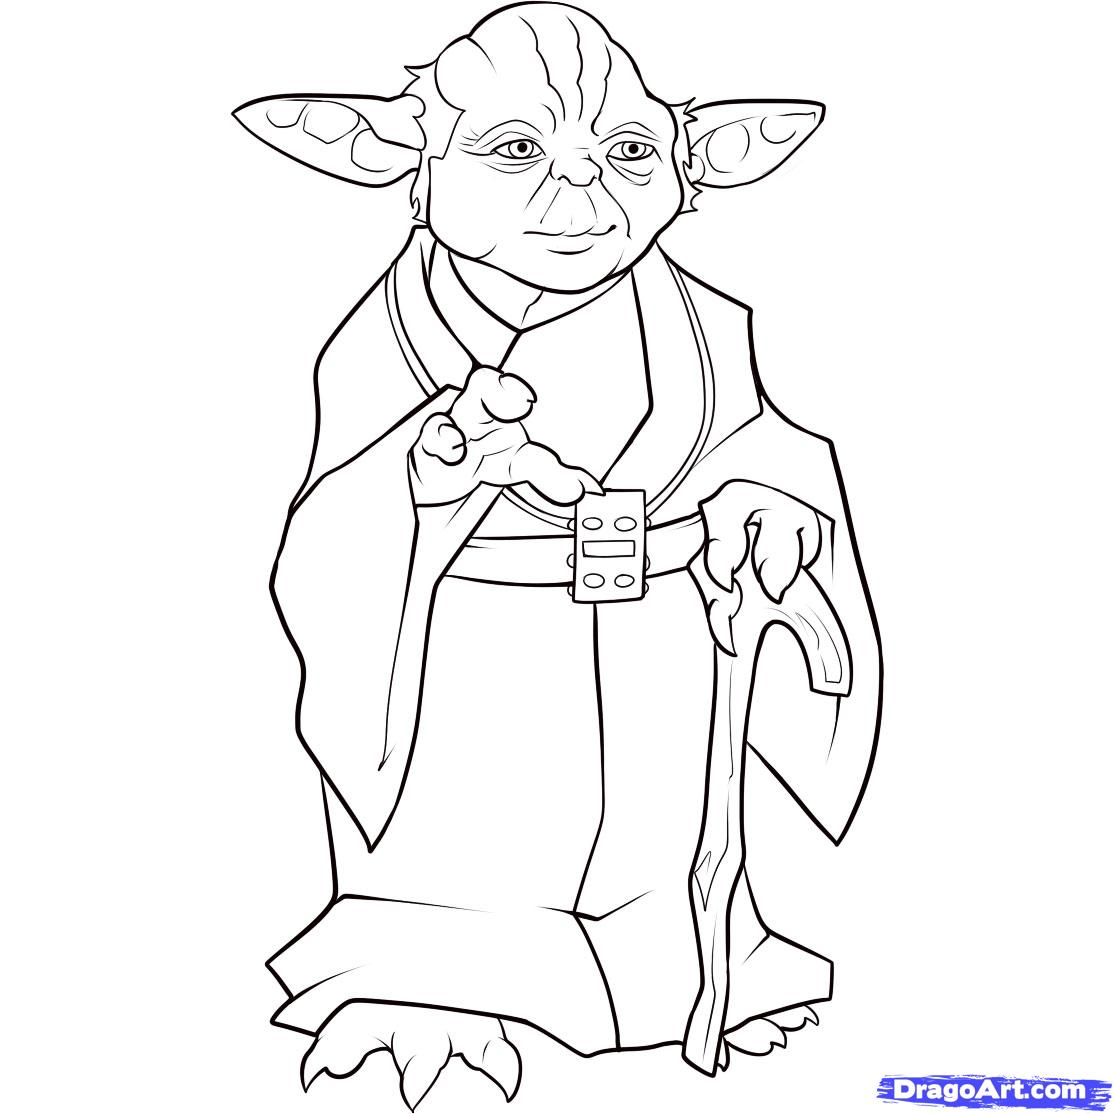 photo relating to Printable Star Wars Characters titled Star Wars Figures Drawing at  Free of charge for